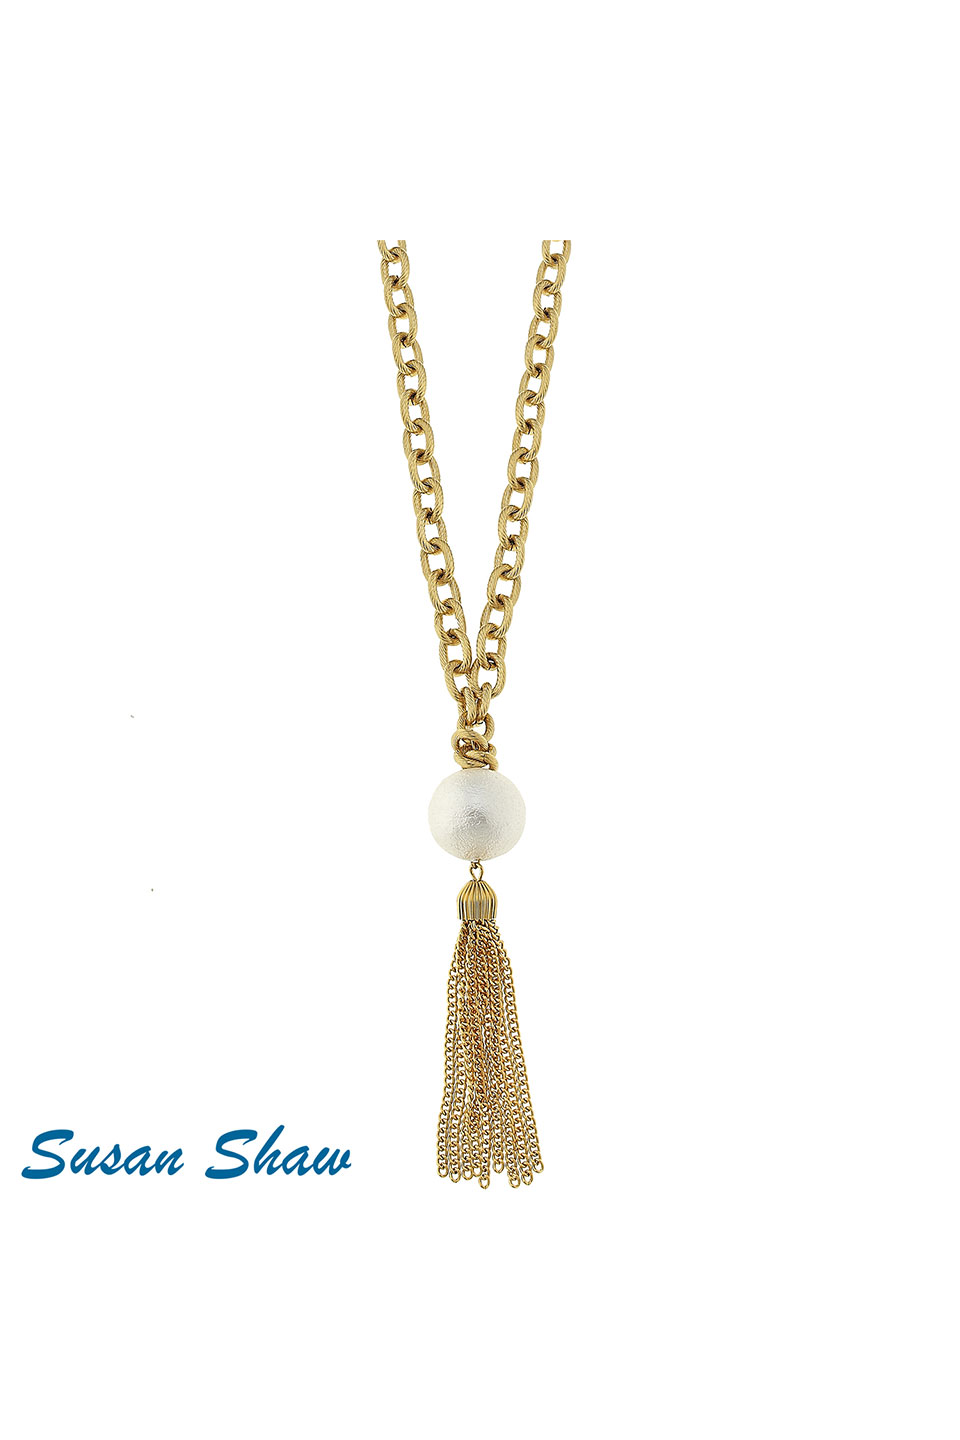 Susan Shaw Large Gold Chain with Pearl & Tassel Necklace